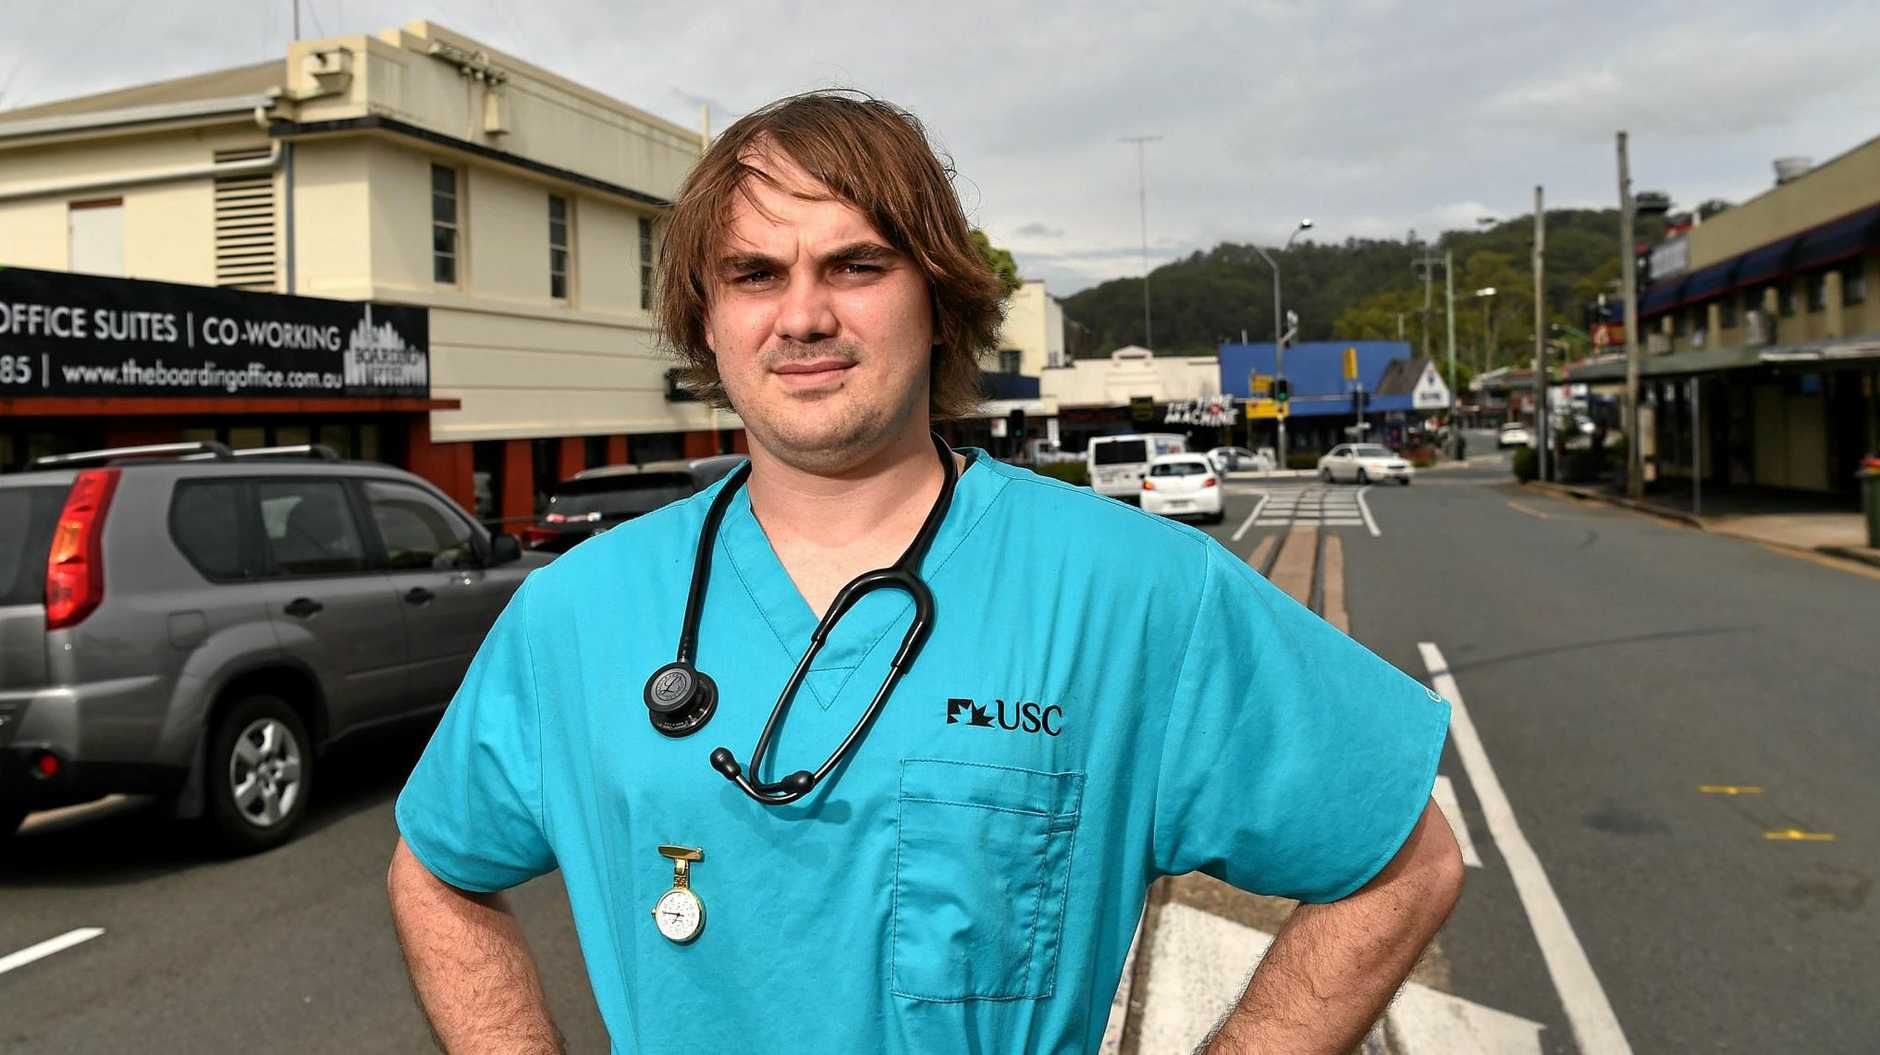 CPR SUPERSTAR: University of the Sunshine Coast student nurse Aaron Collins helped resuscitate an elderly man who was crossing Mill St when his prosthetic leg became caught in the cane train track causing him to fall and hit his head.